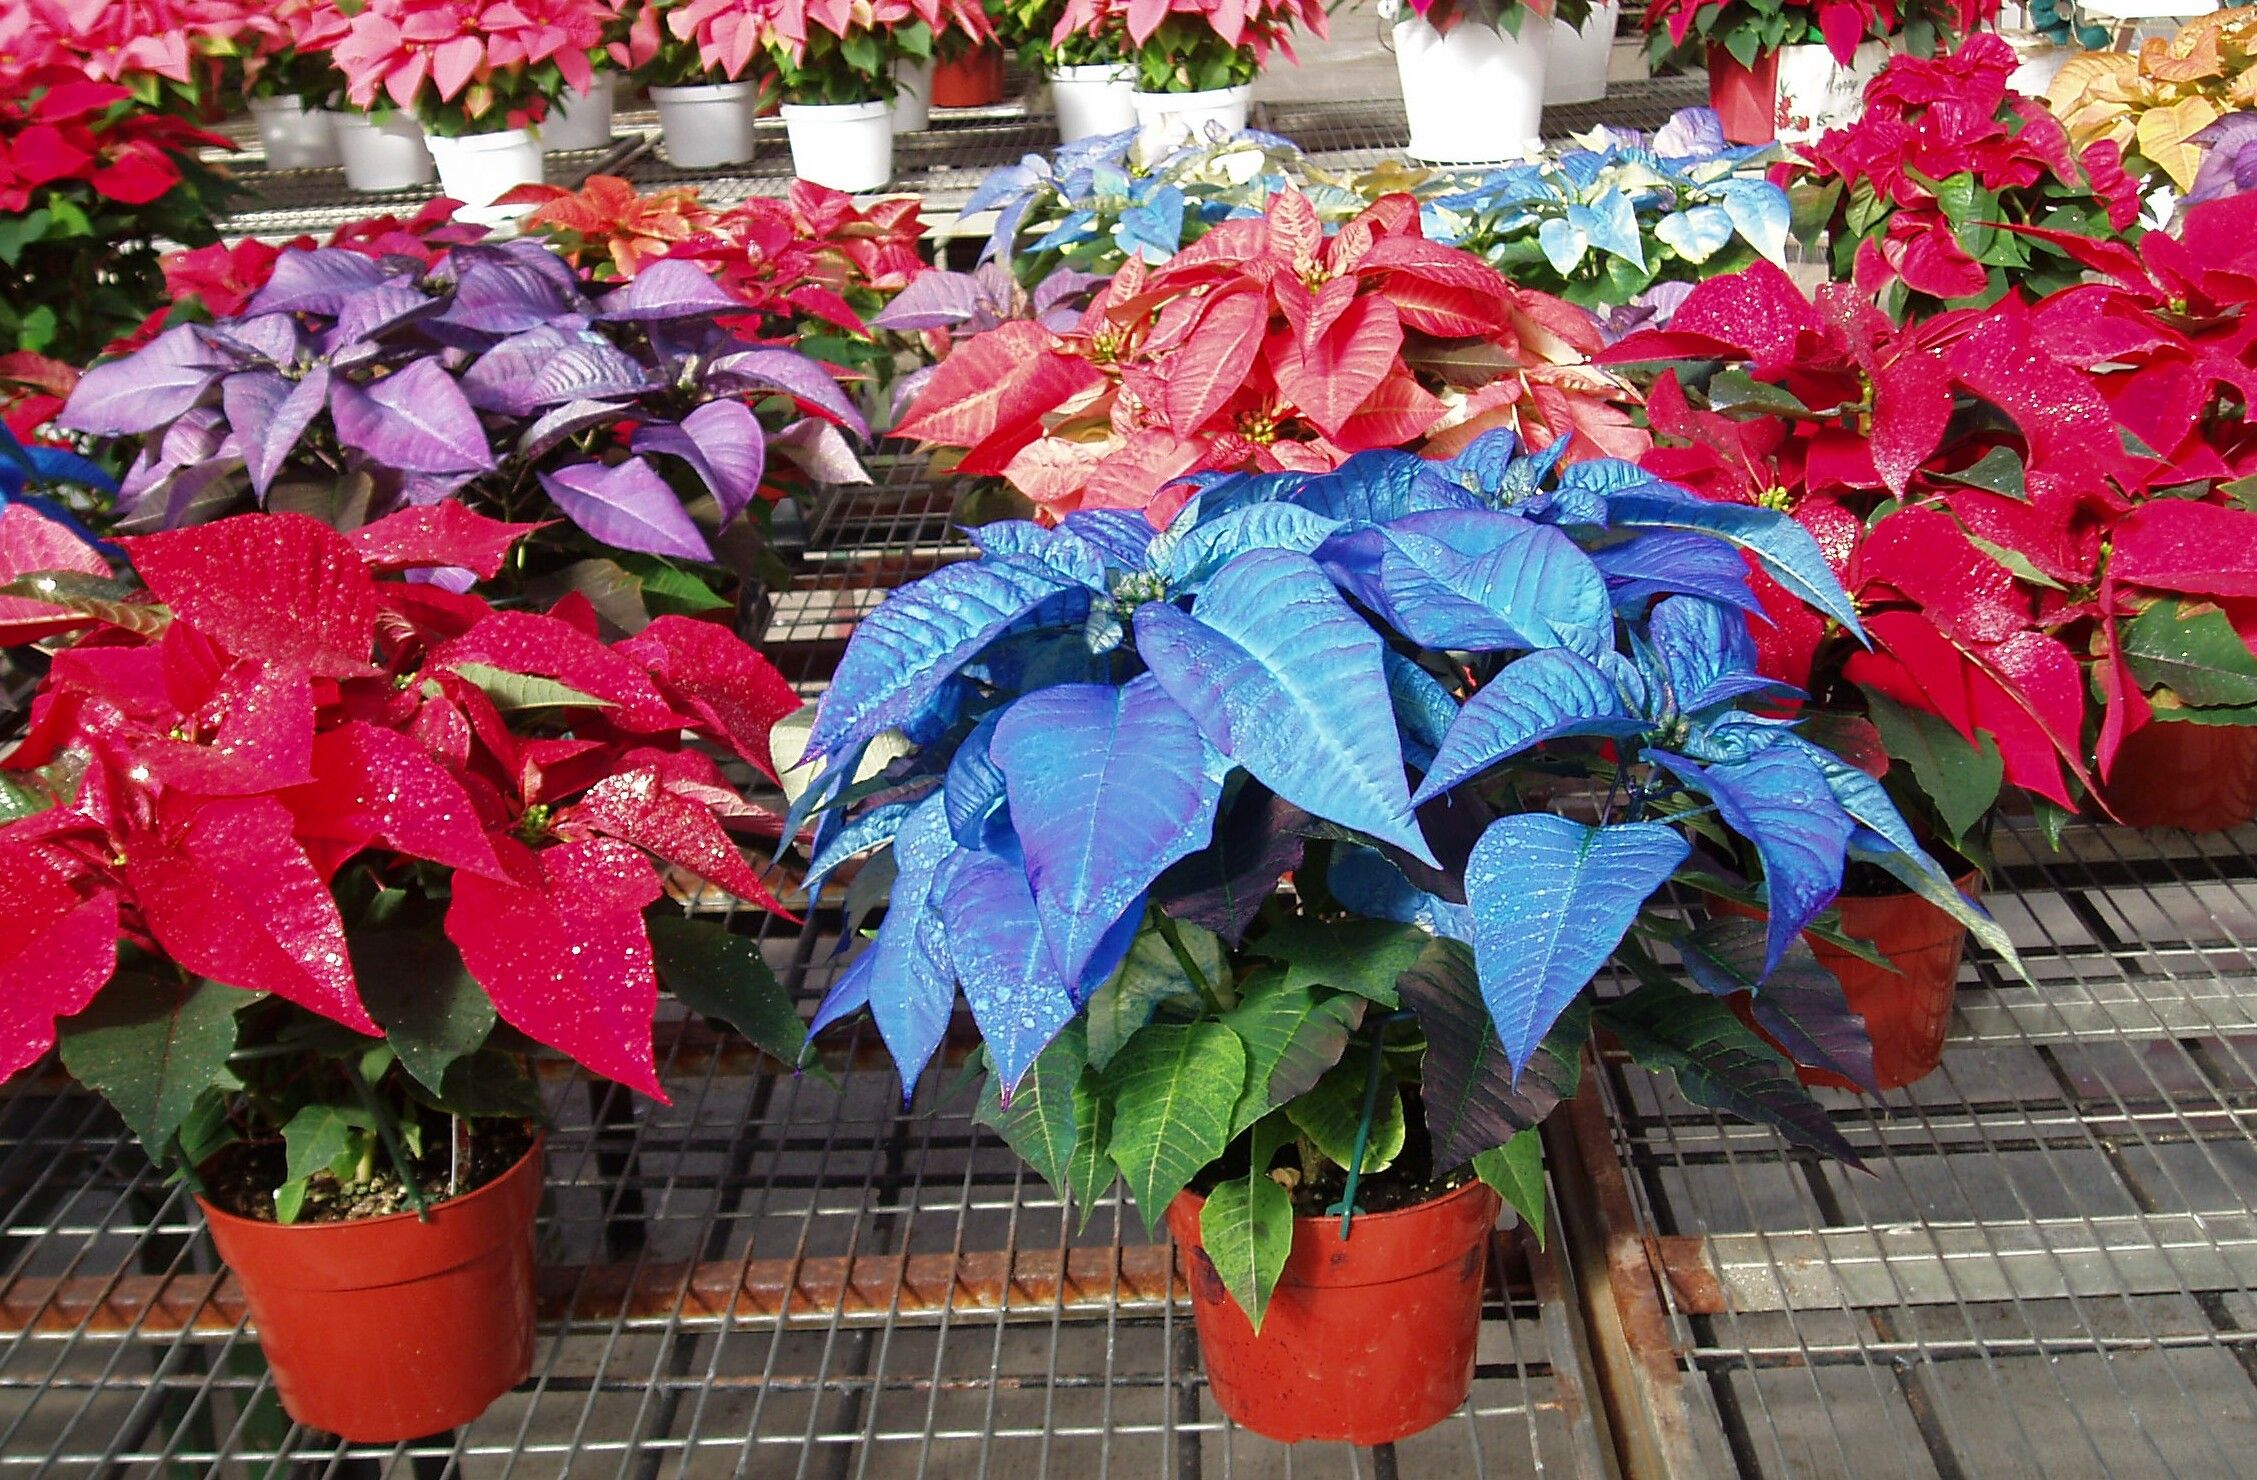 Poinsettias Come In Many Colors Including Burgundy Red Pink White